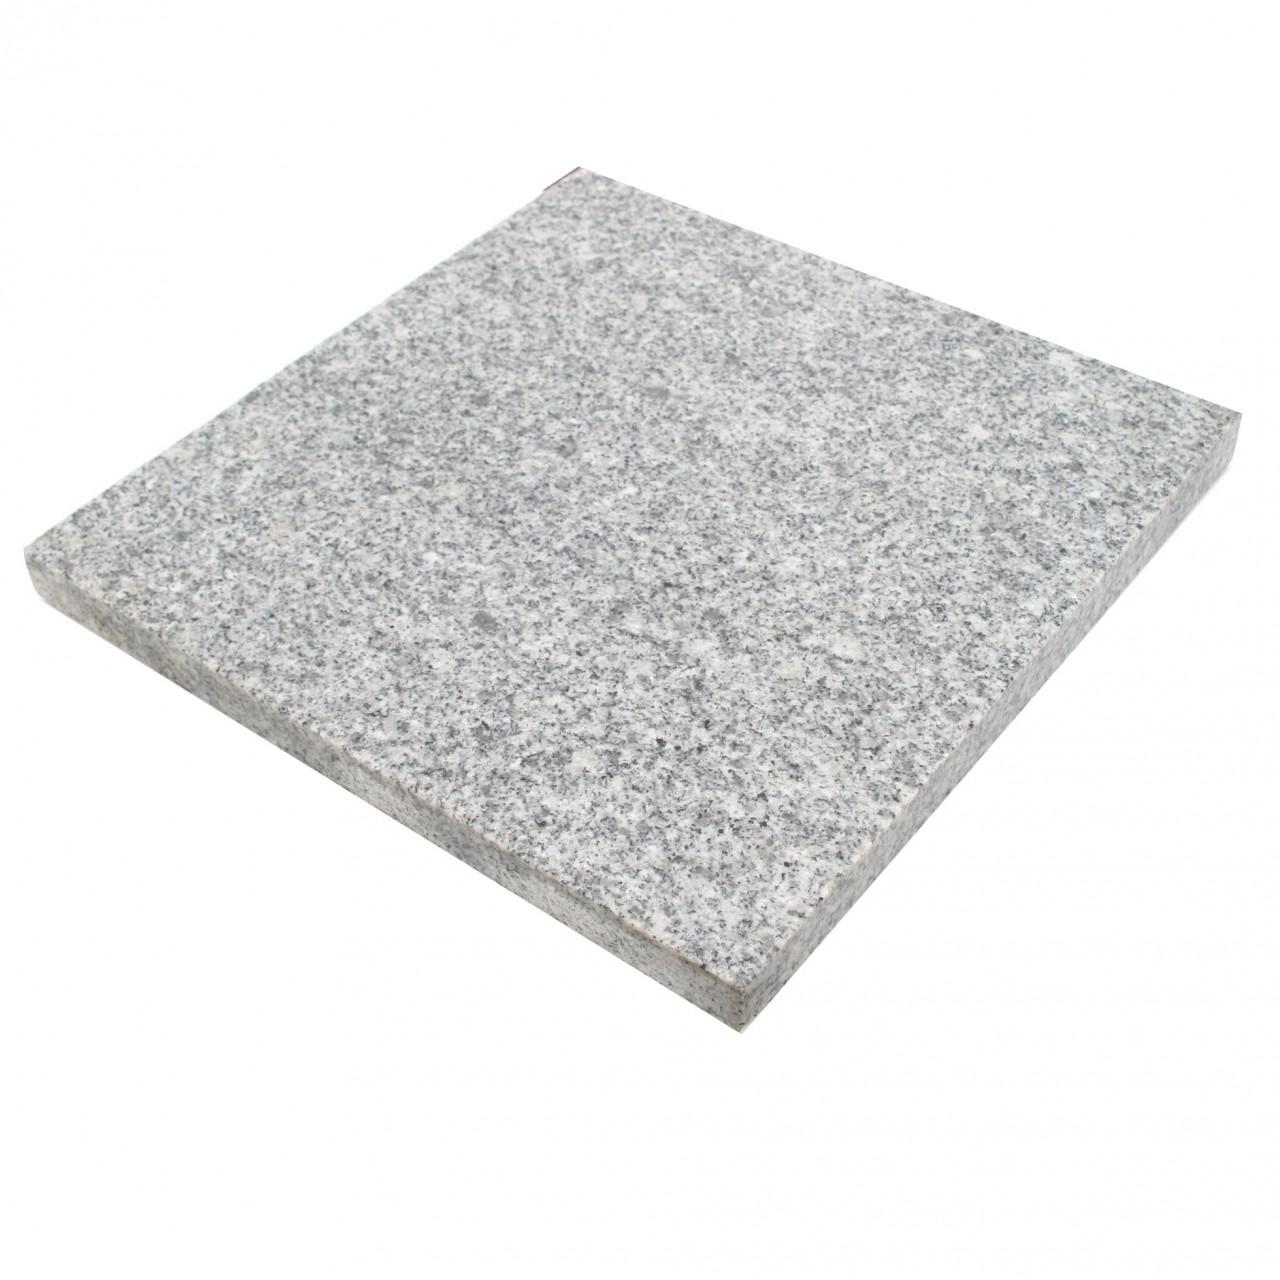 Cheap GIGA white fantasy granite surfaces for sale